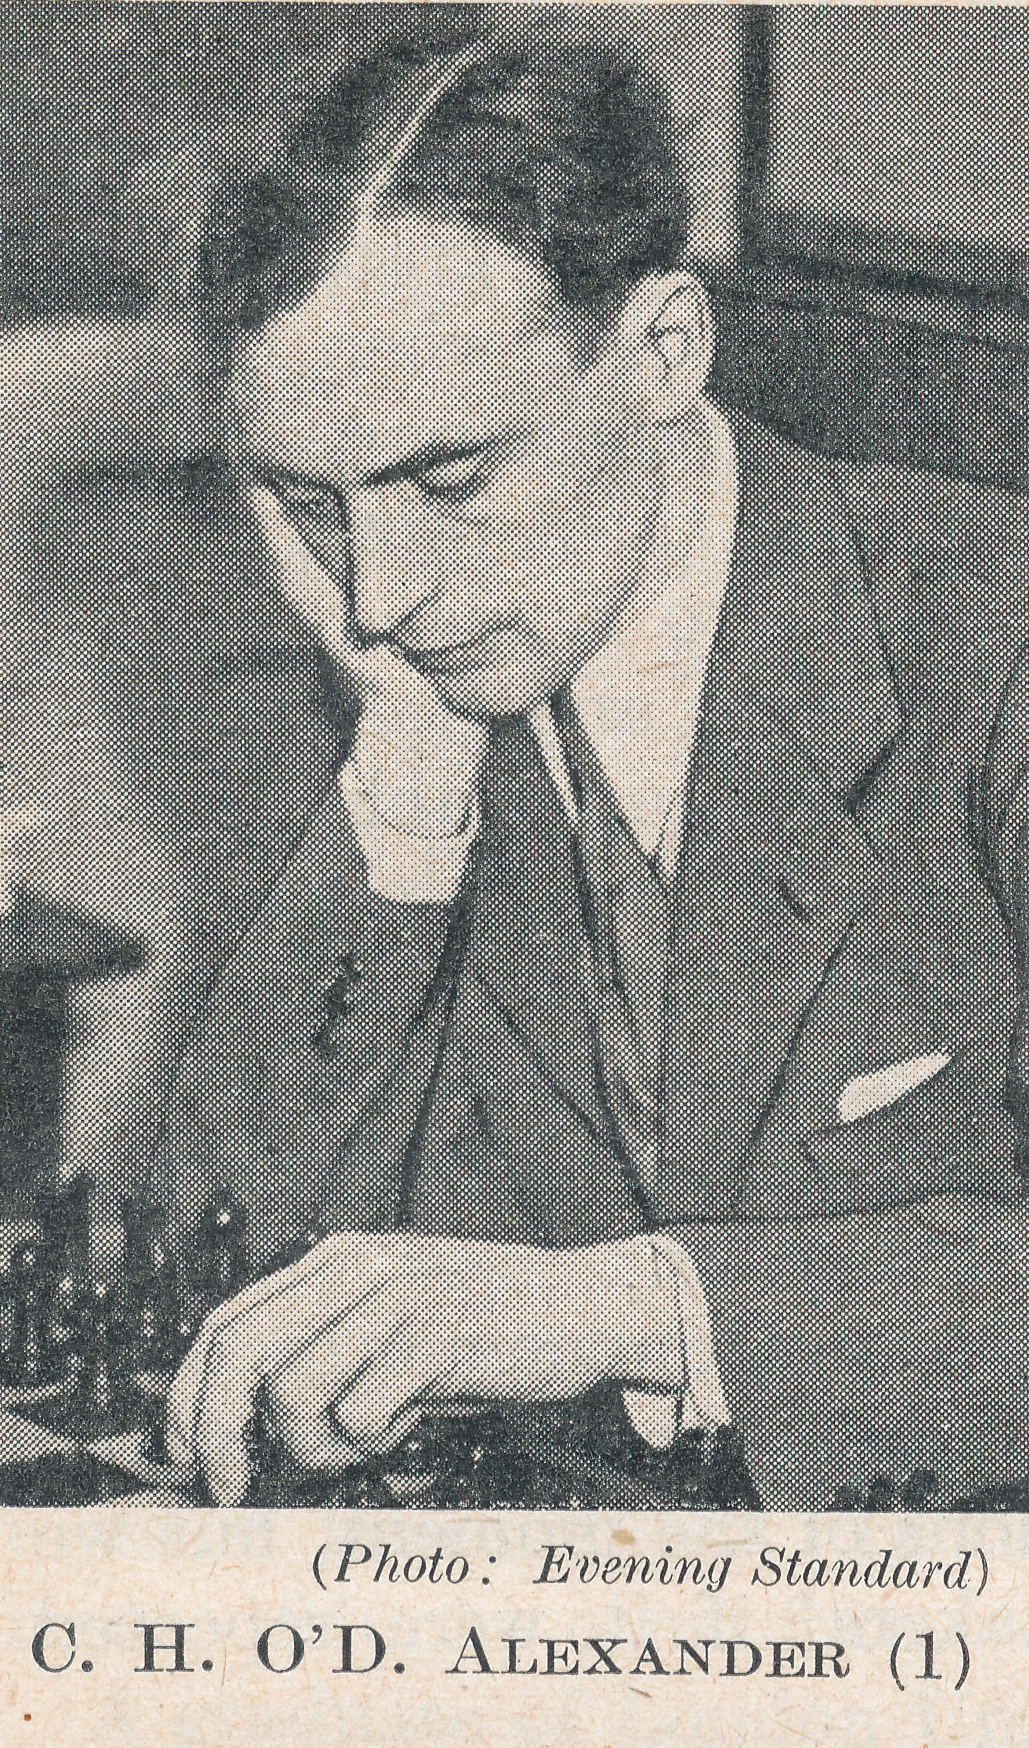 IM Conel Hugh O'Donel Alexander CMG CBE (19-iv-1909 15-ii-1974). Source : The Anglo-Soviet Radio Chess Match